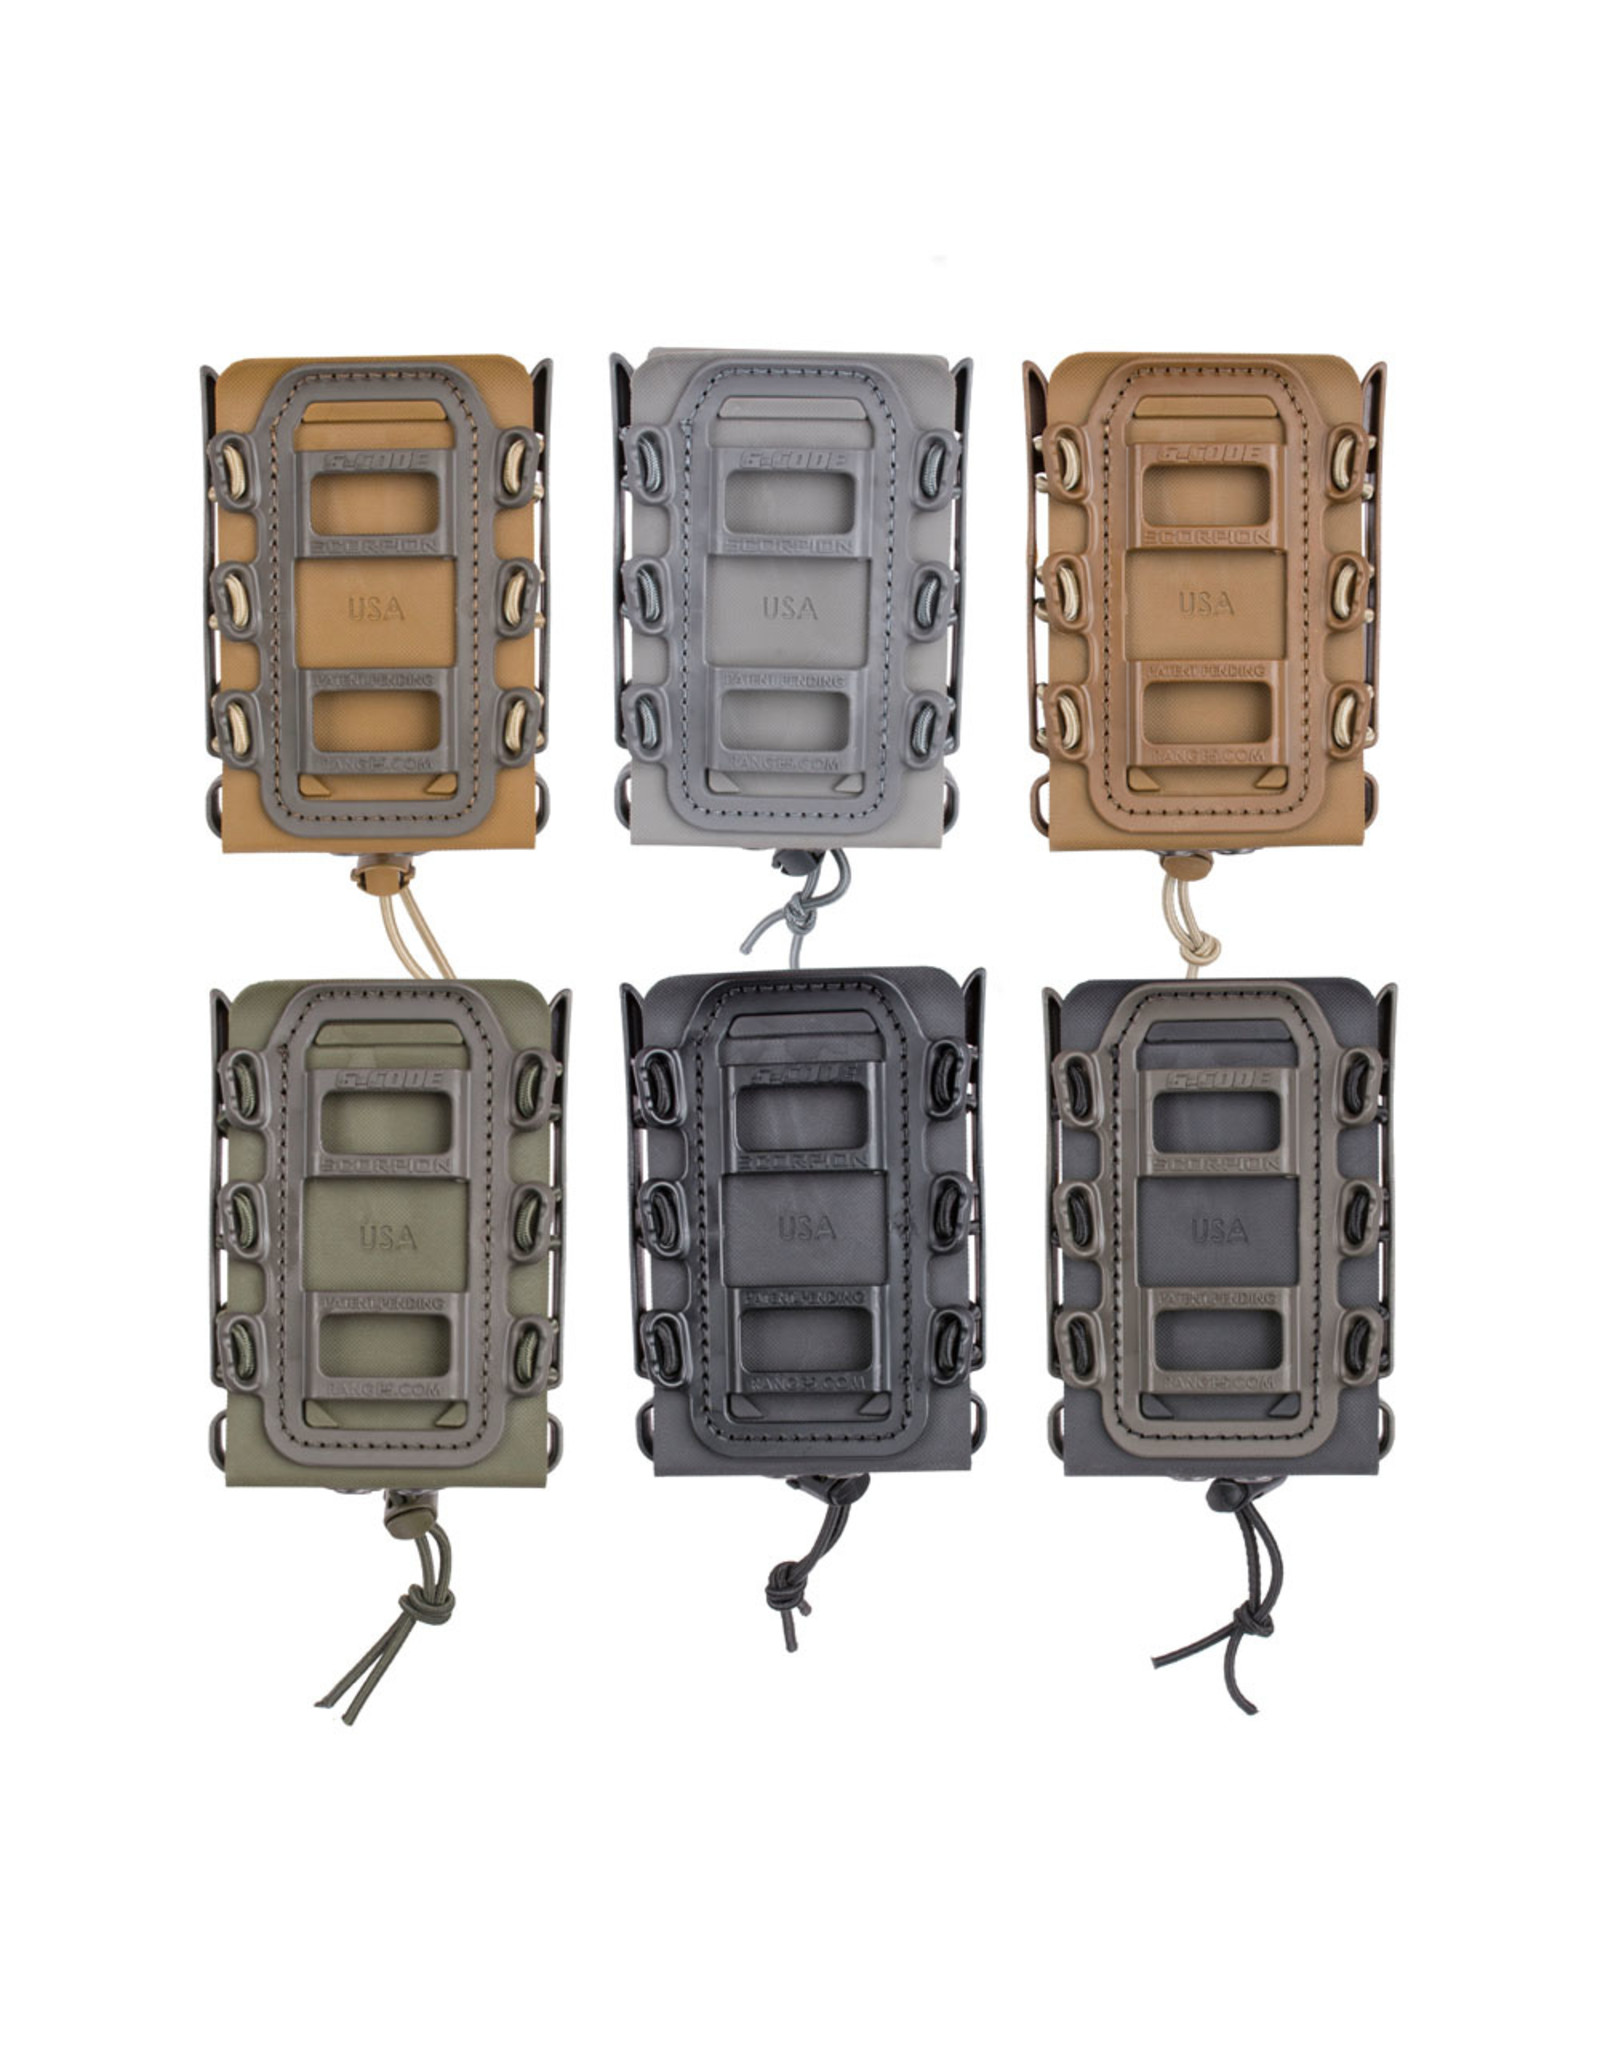 G-CODE G-CODE SOFT SHELL SCORPION RIFLE MAG CARRIER